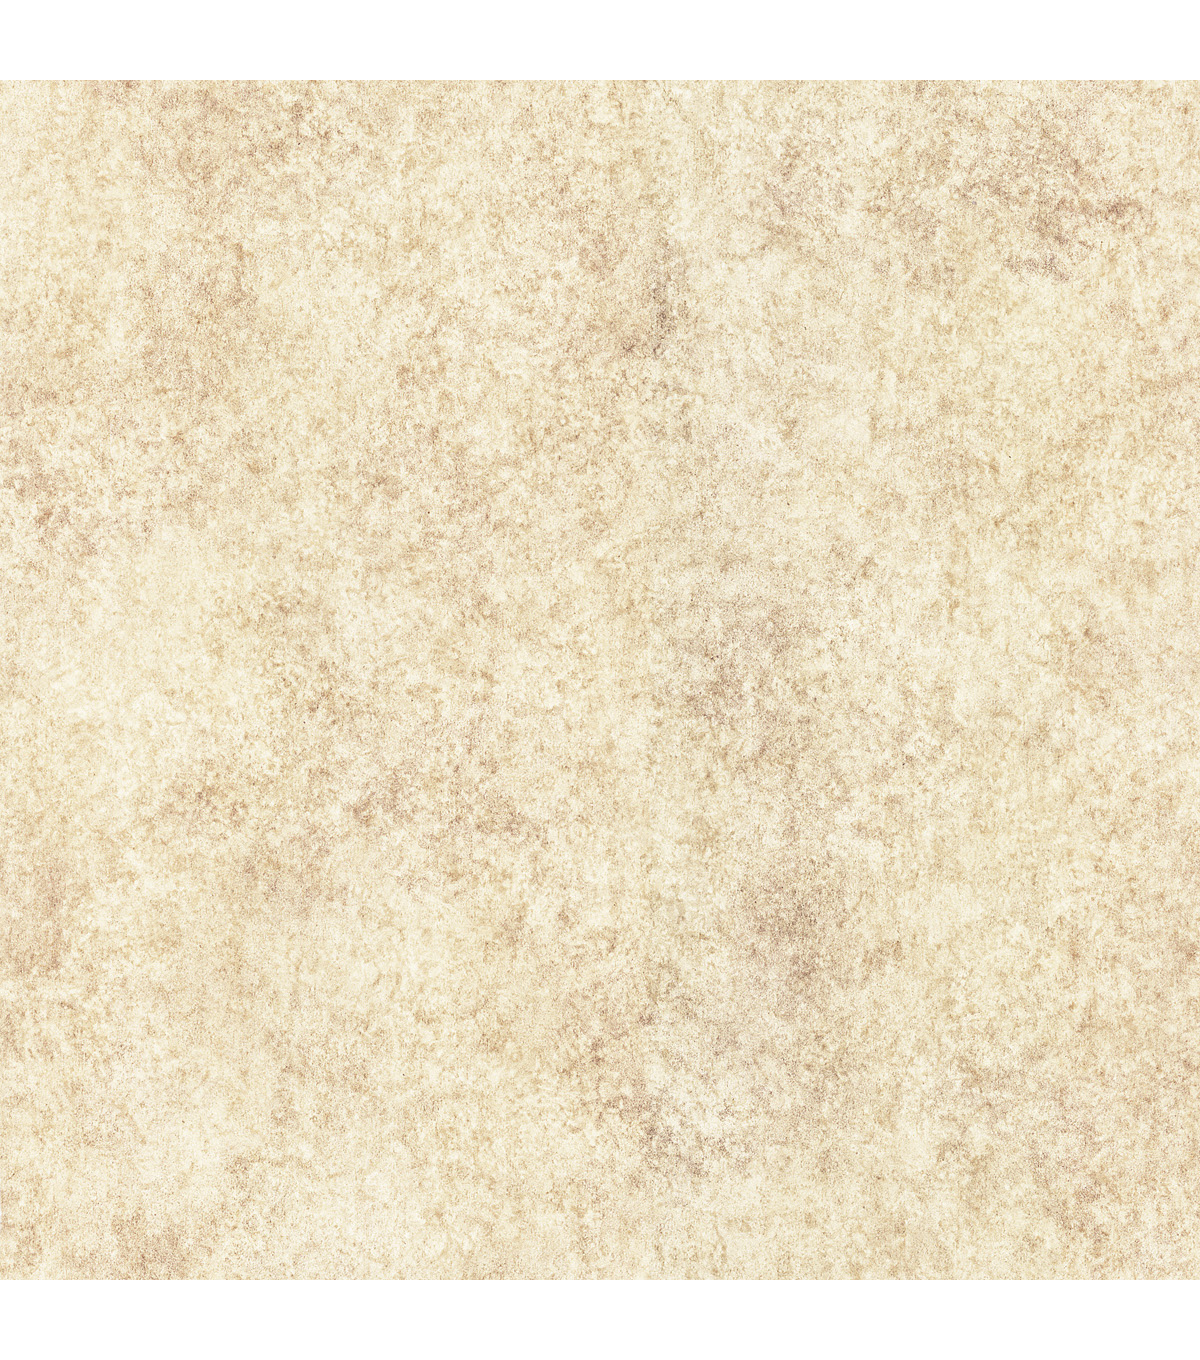 Ambra Light Brown Stylized Texture Wallpaper Sample